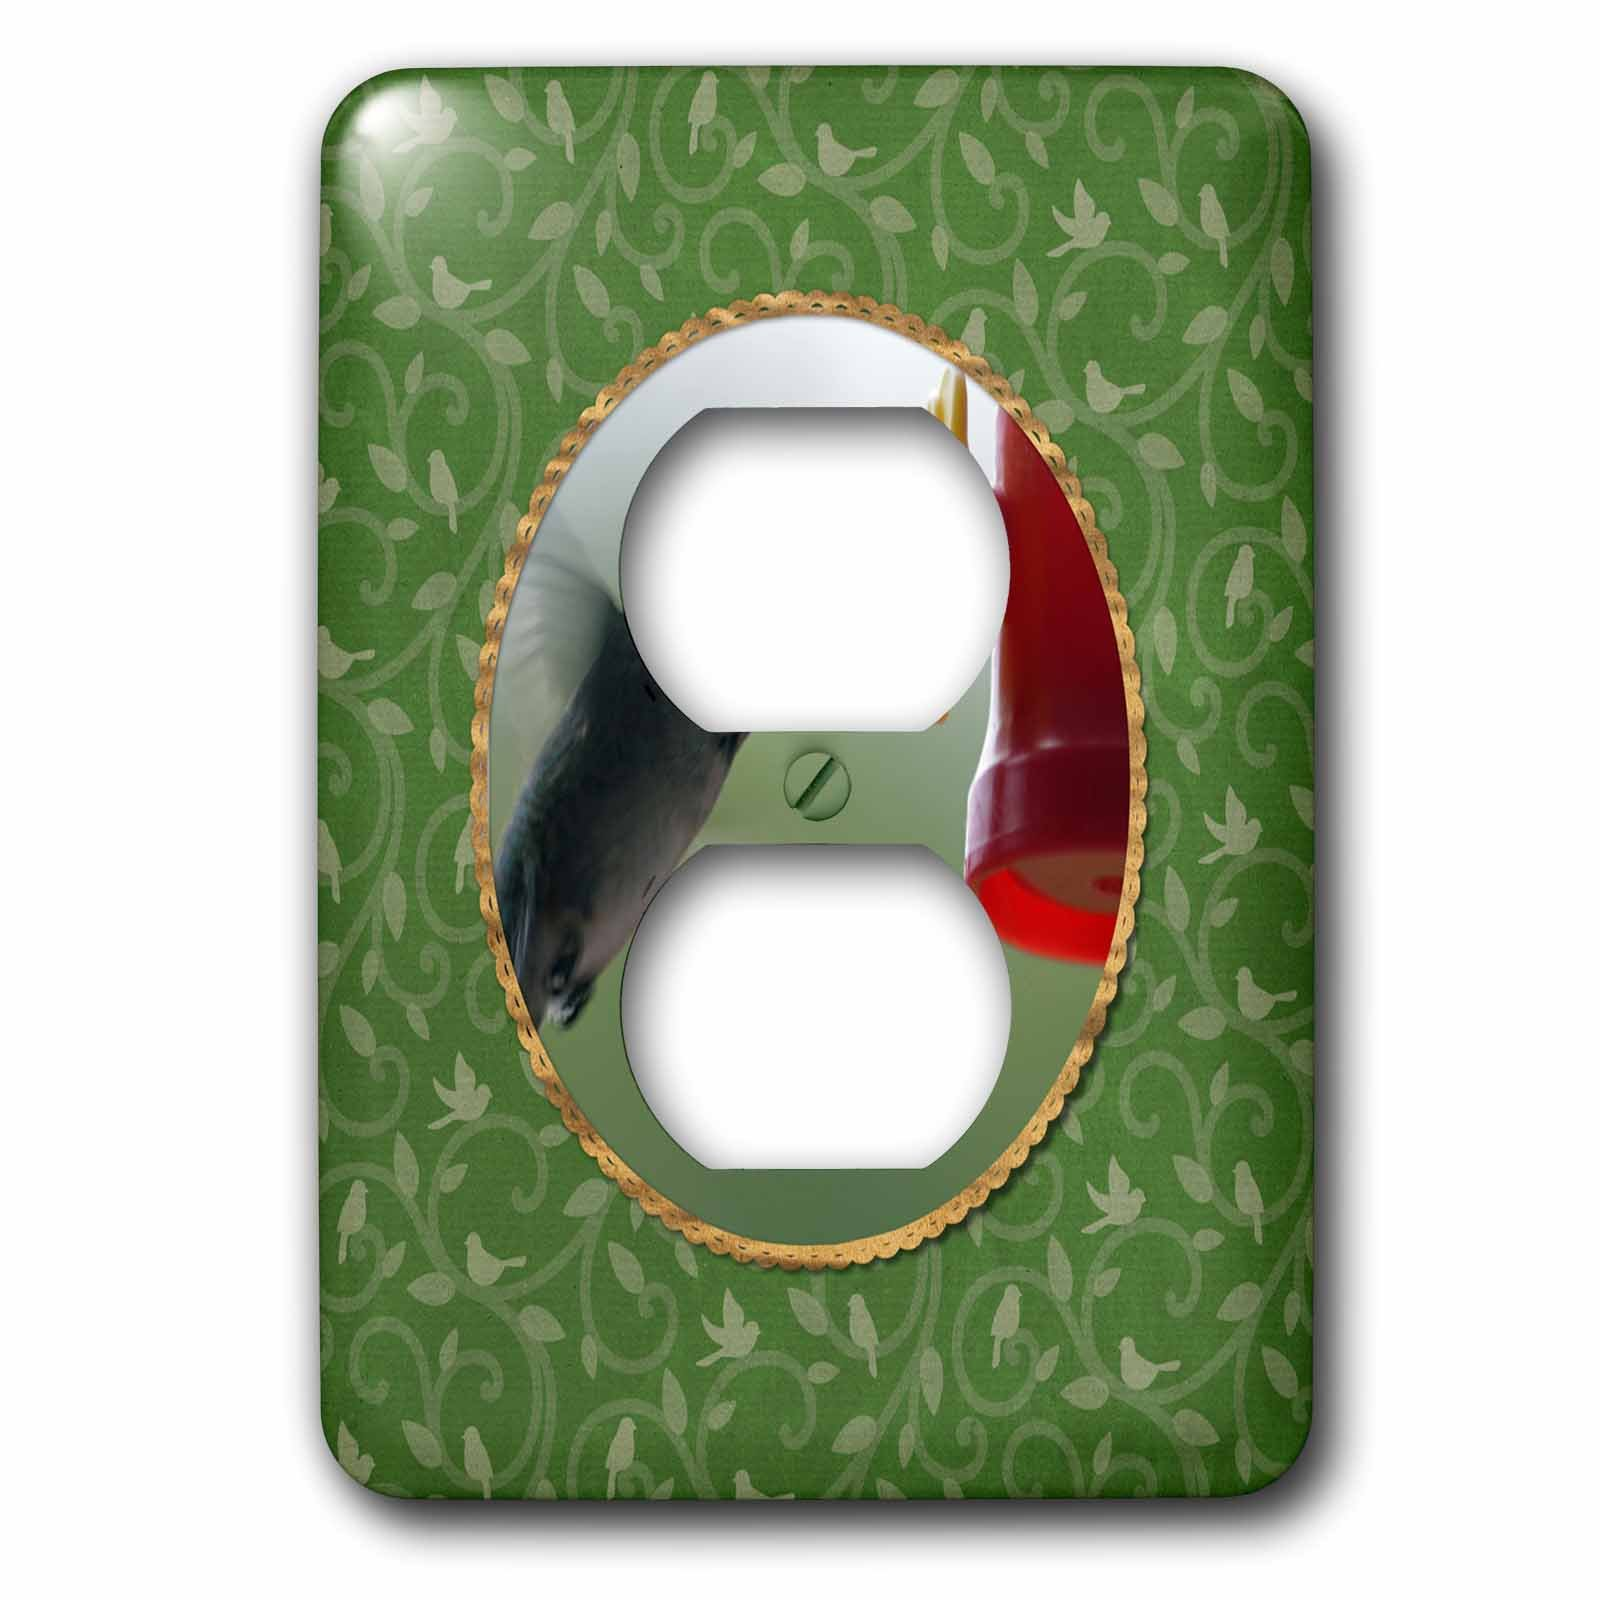 3dRose Beverly Turner Bird Photography - Hummingbird at Feeder in Round, Birds on Branches, Green - Light Switch Covers - 2 plug outlet cover (lsp_274408_6)